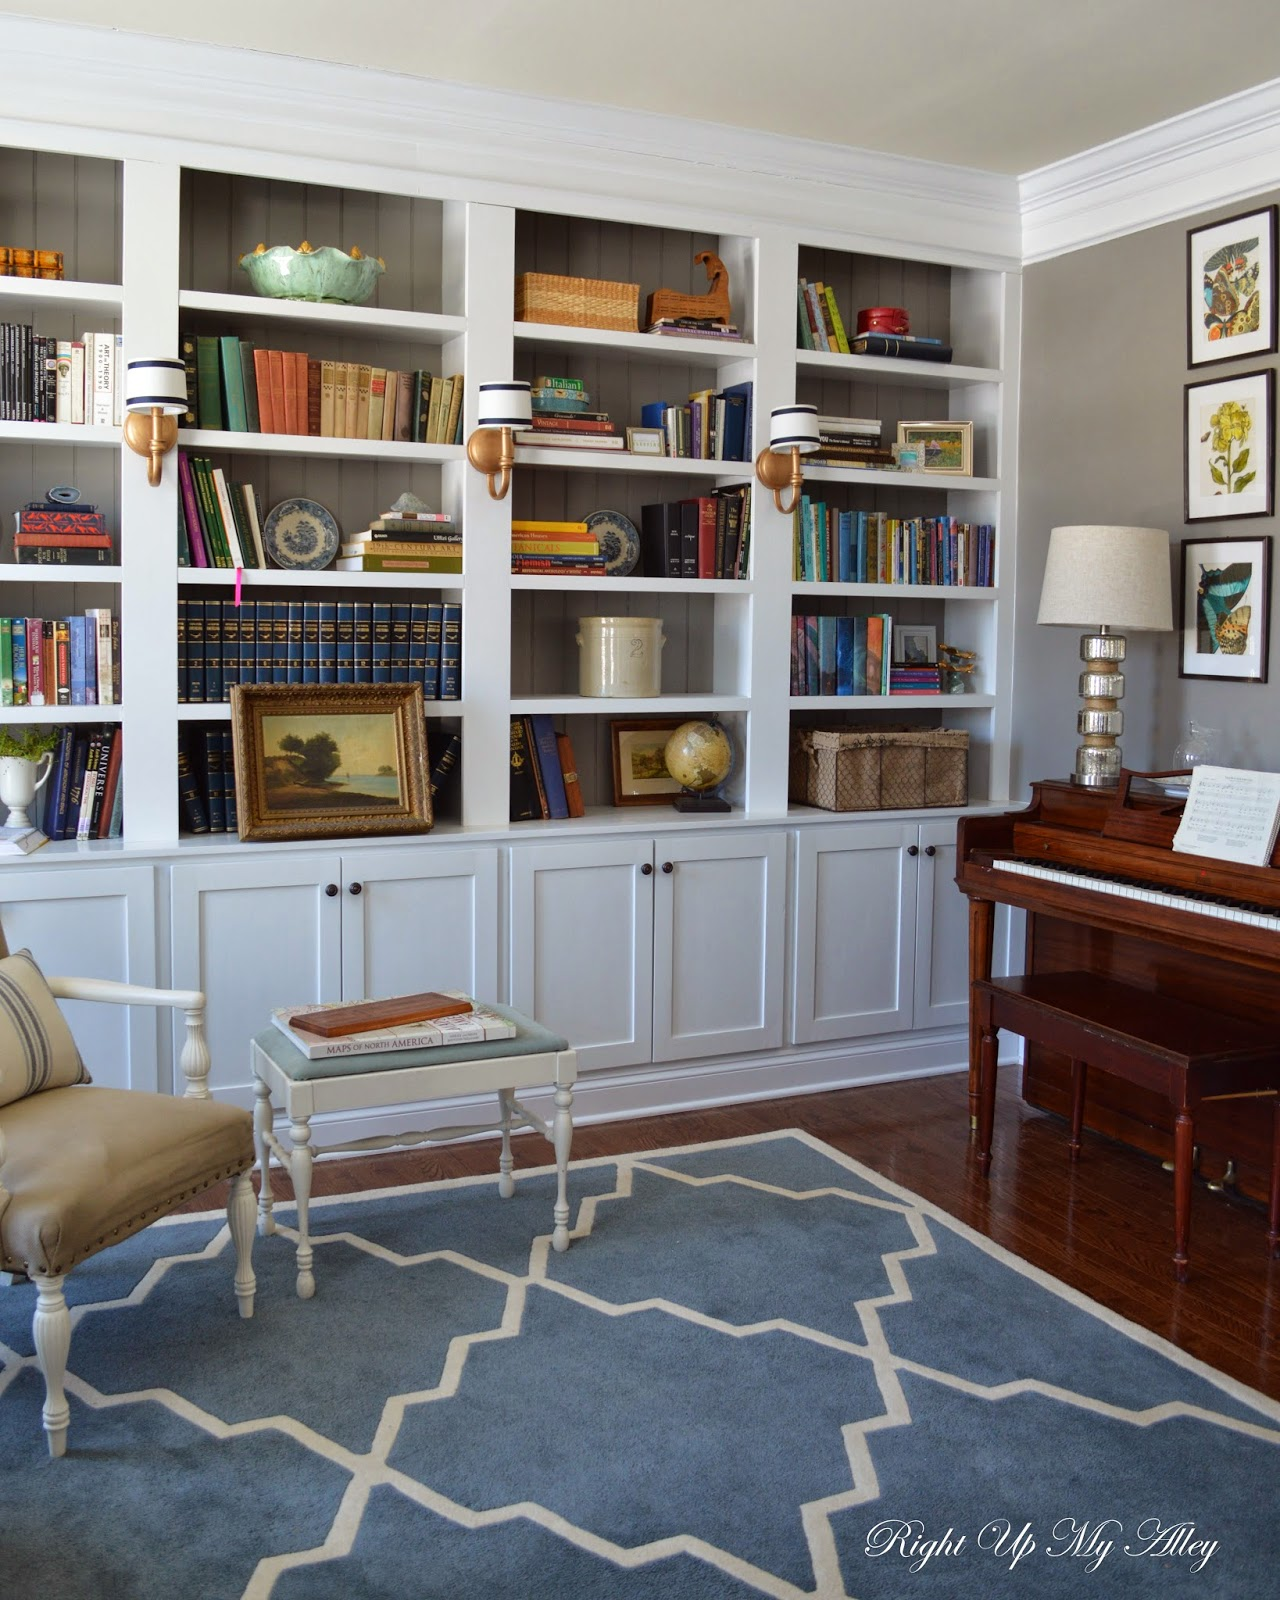 Right Up My Alley How We Built Our Library Bookshelves - Diy built in bookshelves